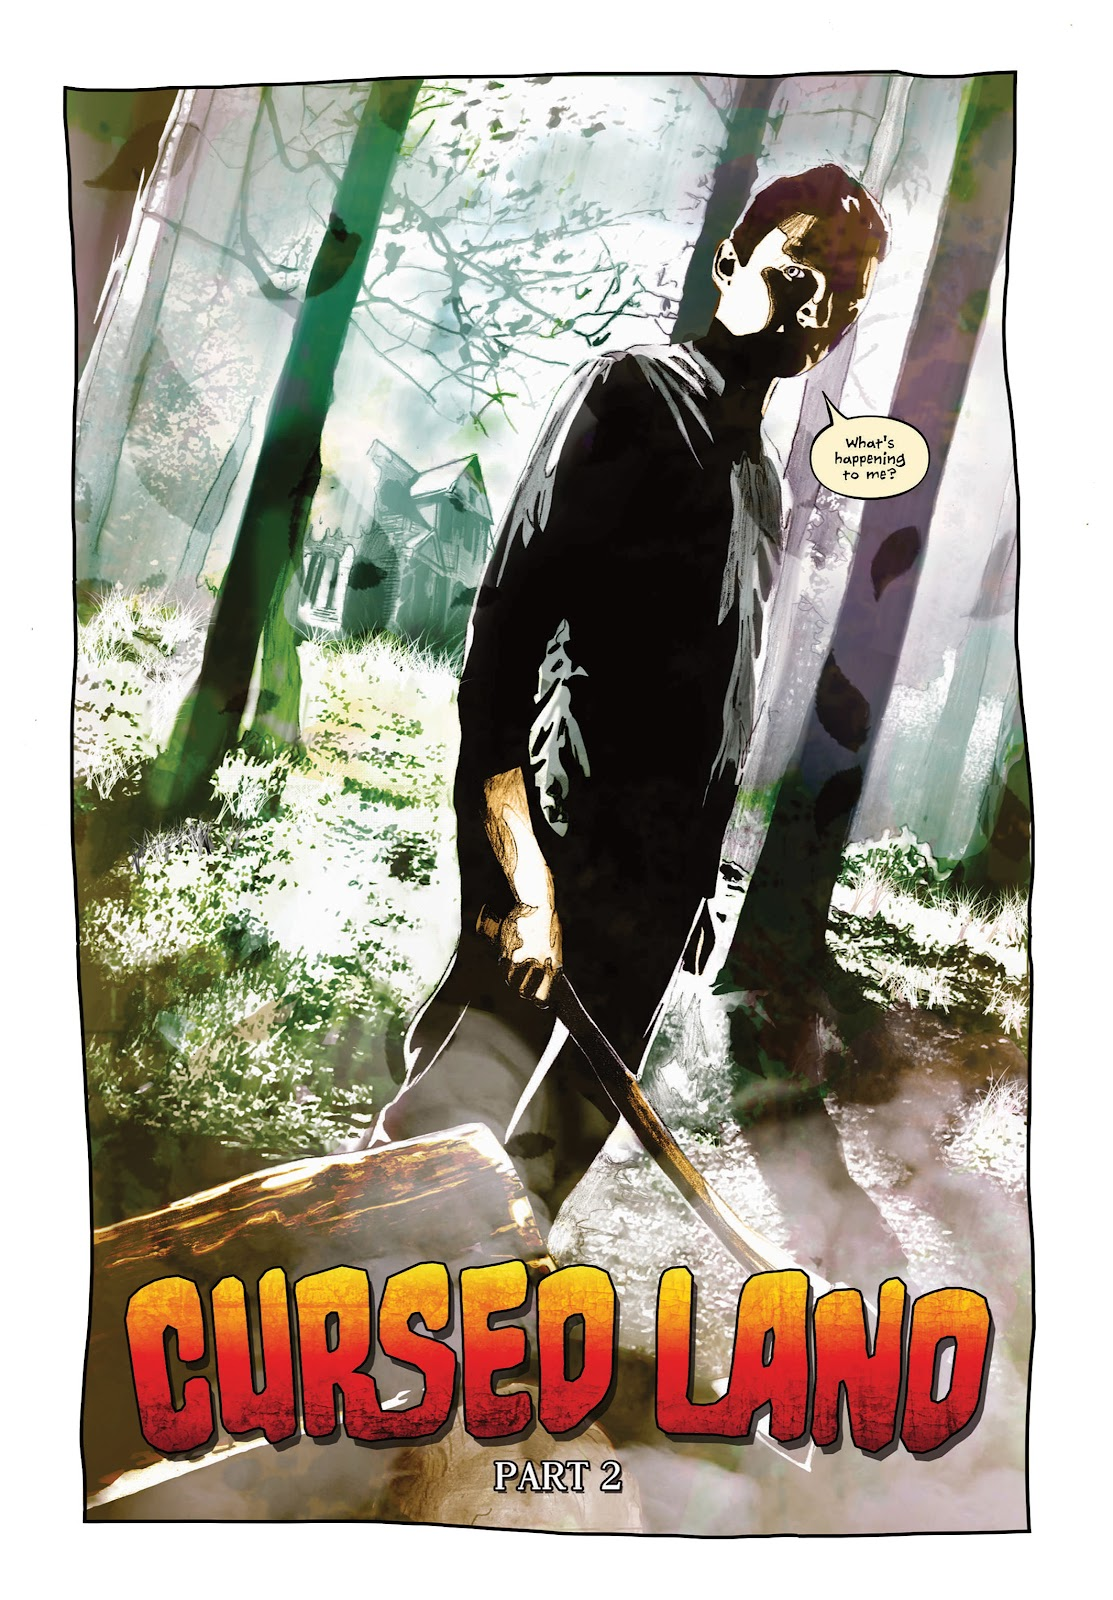 Read online Cursed Land comic -  Issue #2 - 4